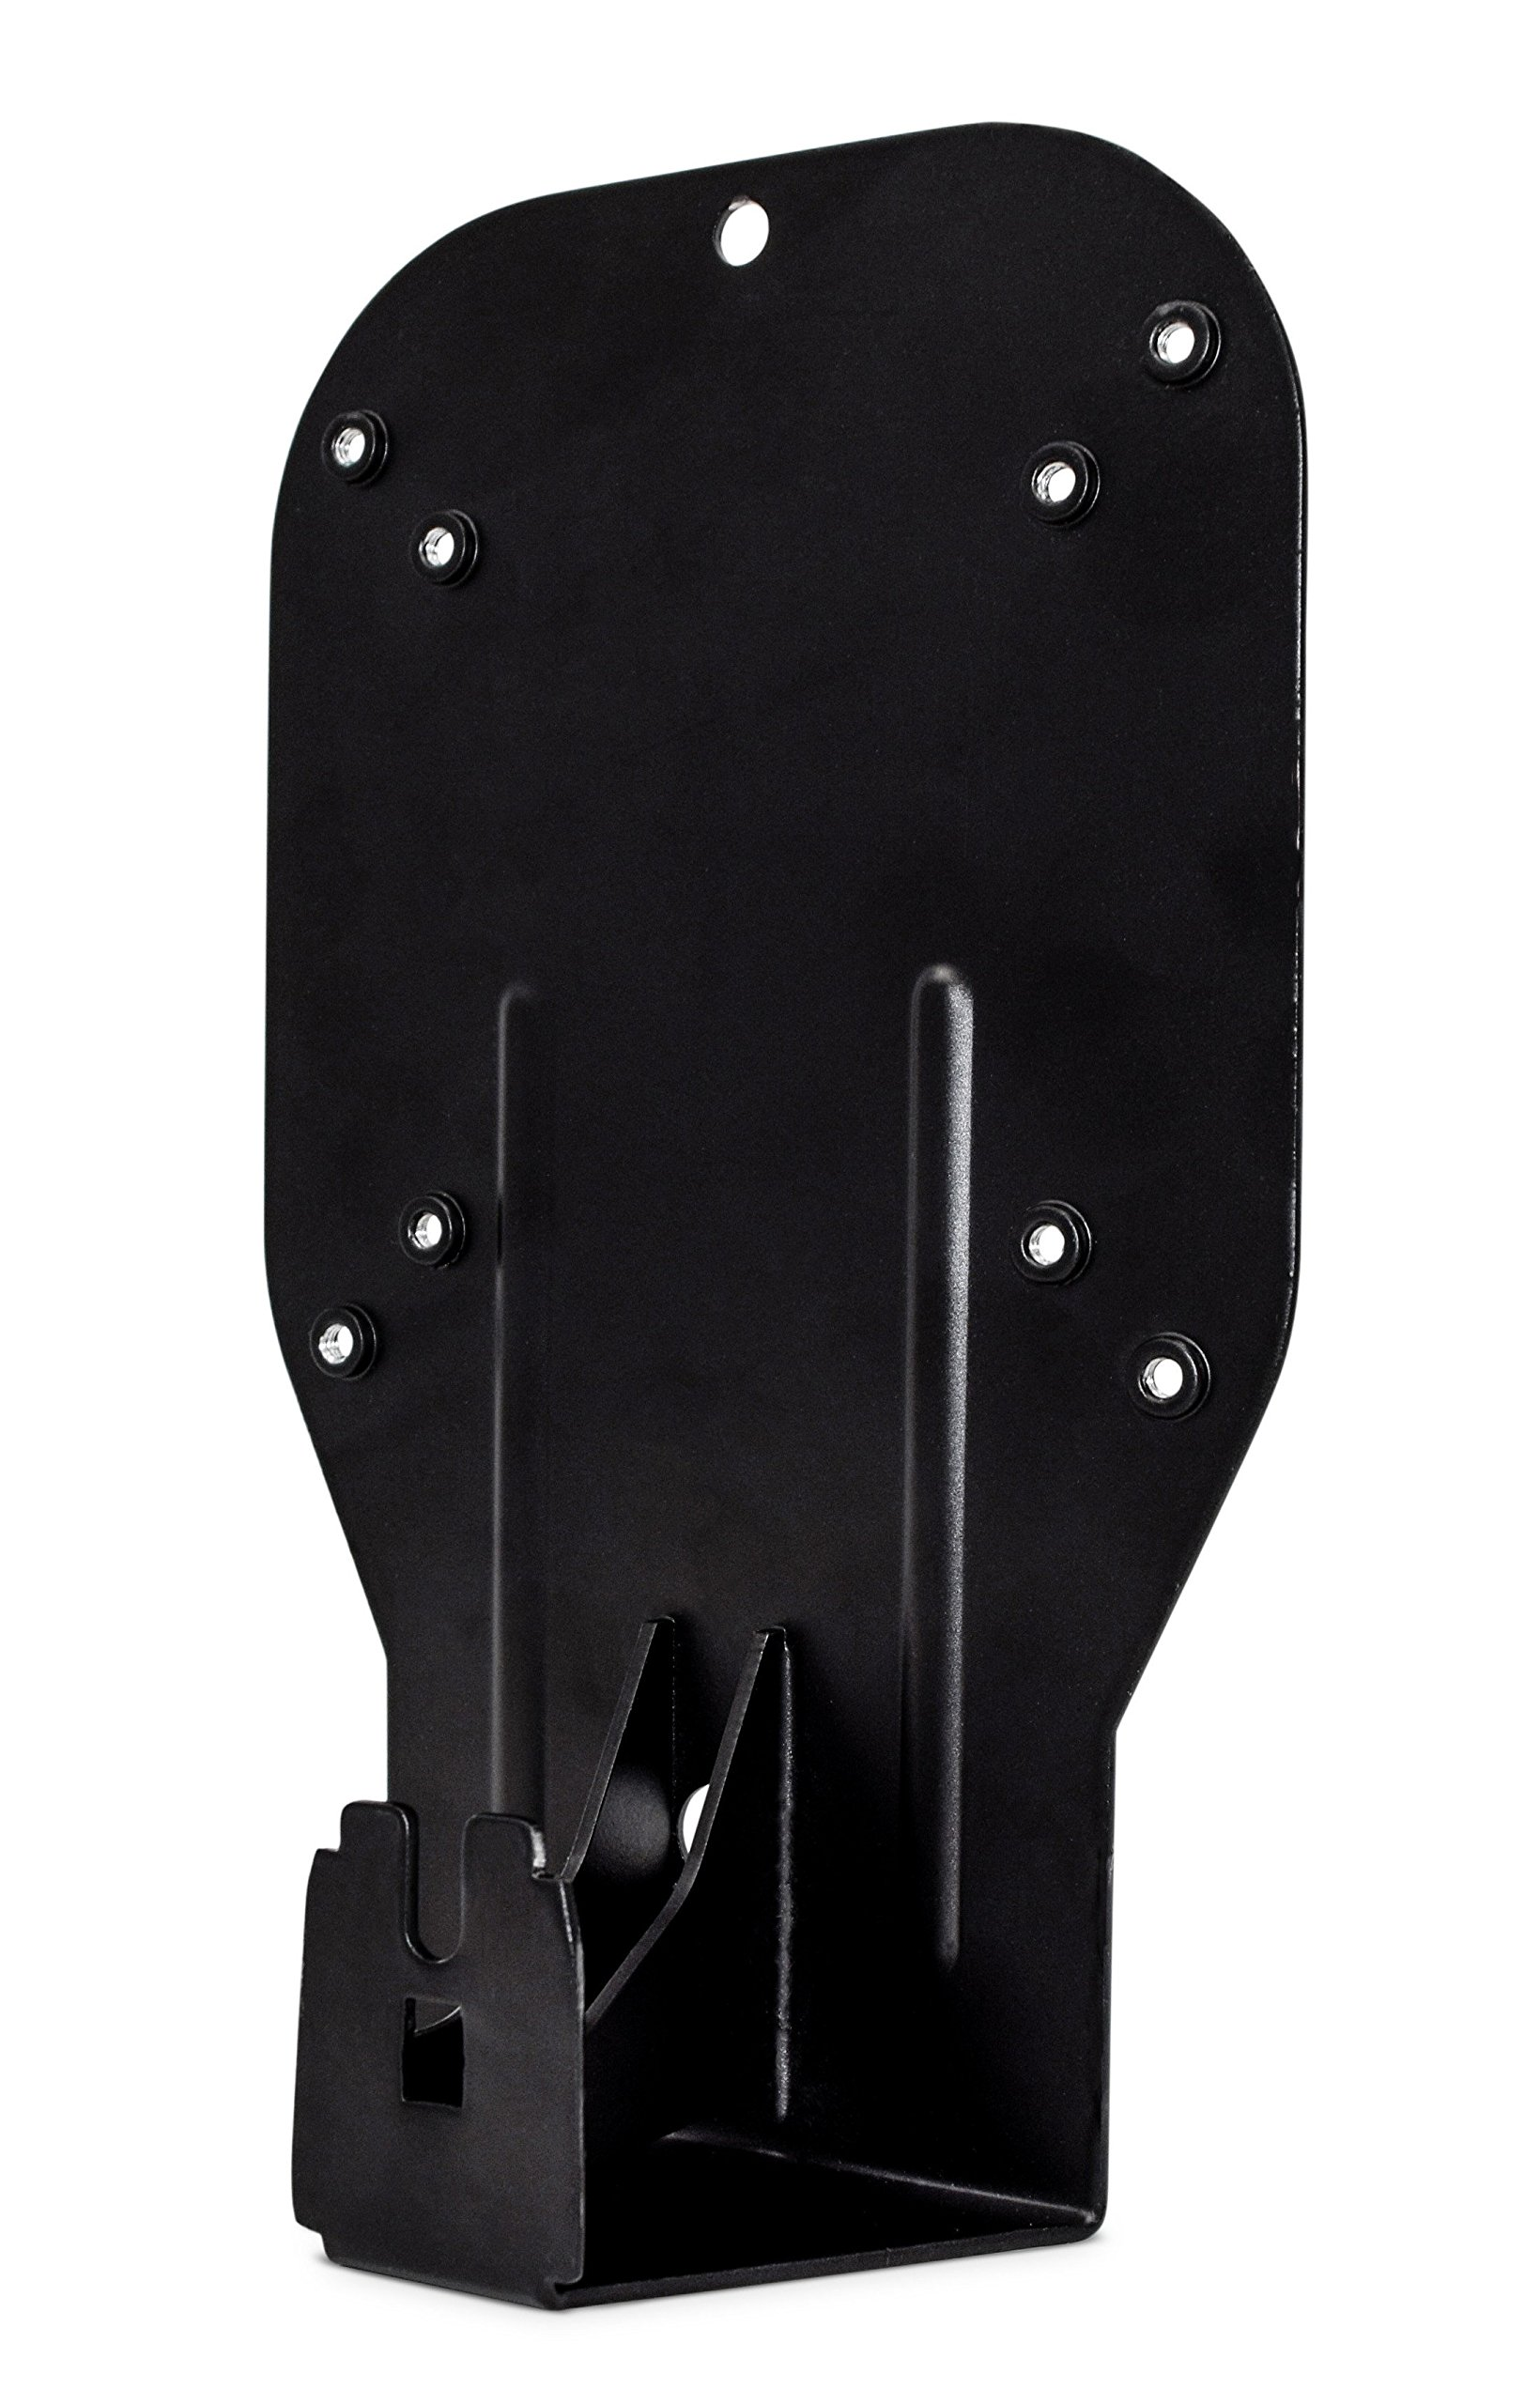 VESA Mount Adapter for Dell S2218, S2318, S2319, S2418, S2419, S2718, S2719 Monitors | Does Not Fit Ultrathin Monitors S2718D, S2719HM, and S2719DM | [Patent Pending] - by HumanCentric by HumanCentric